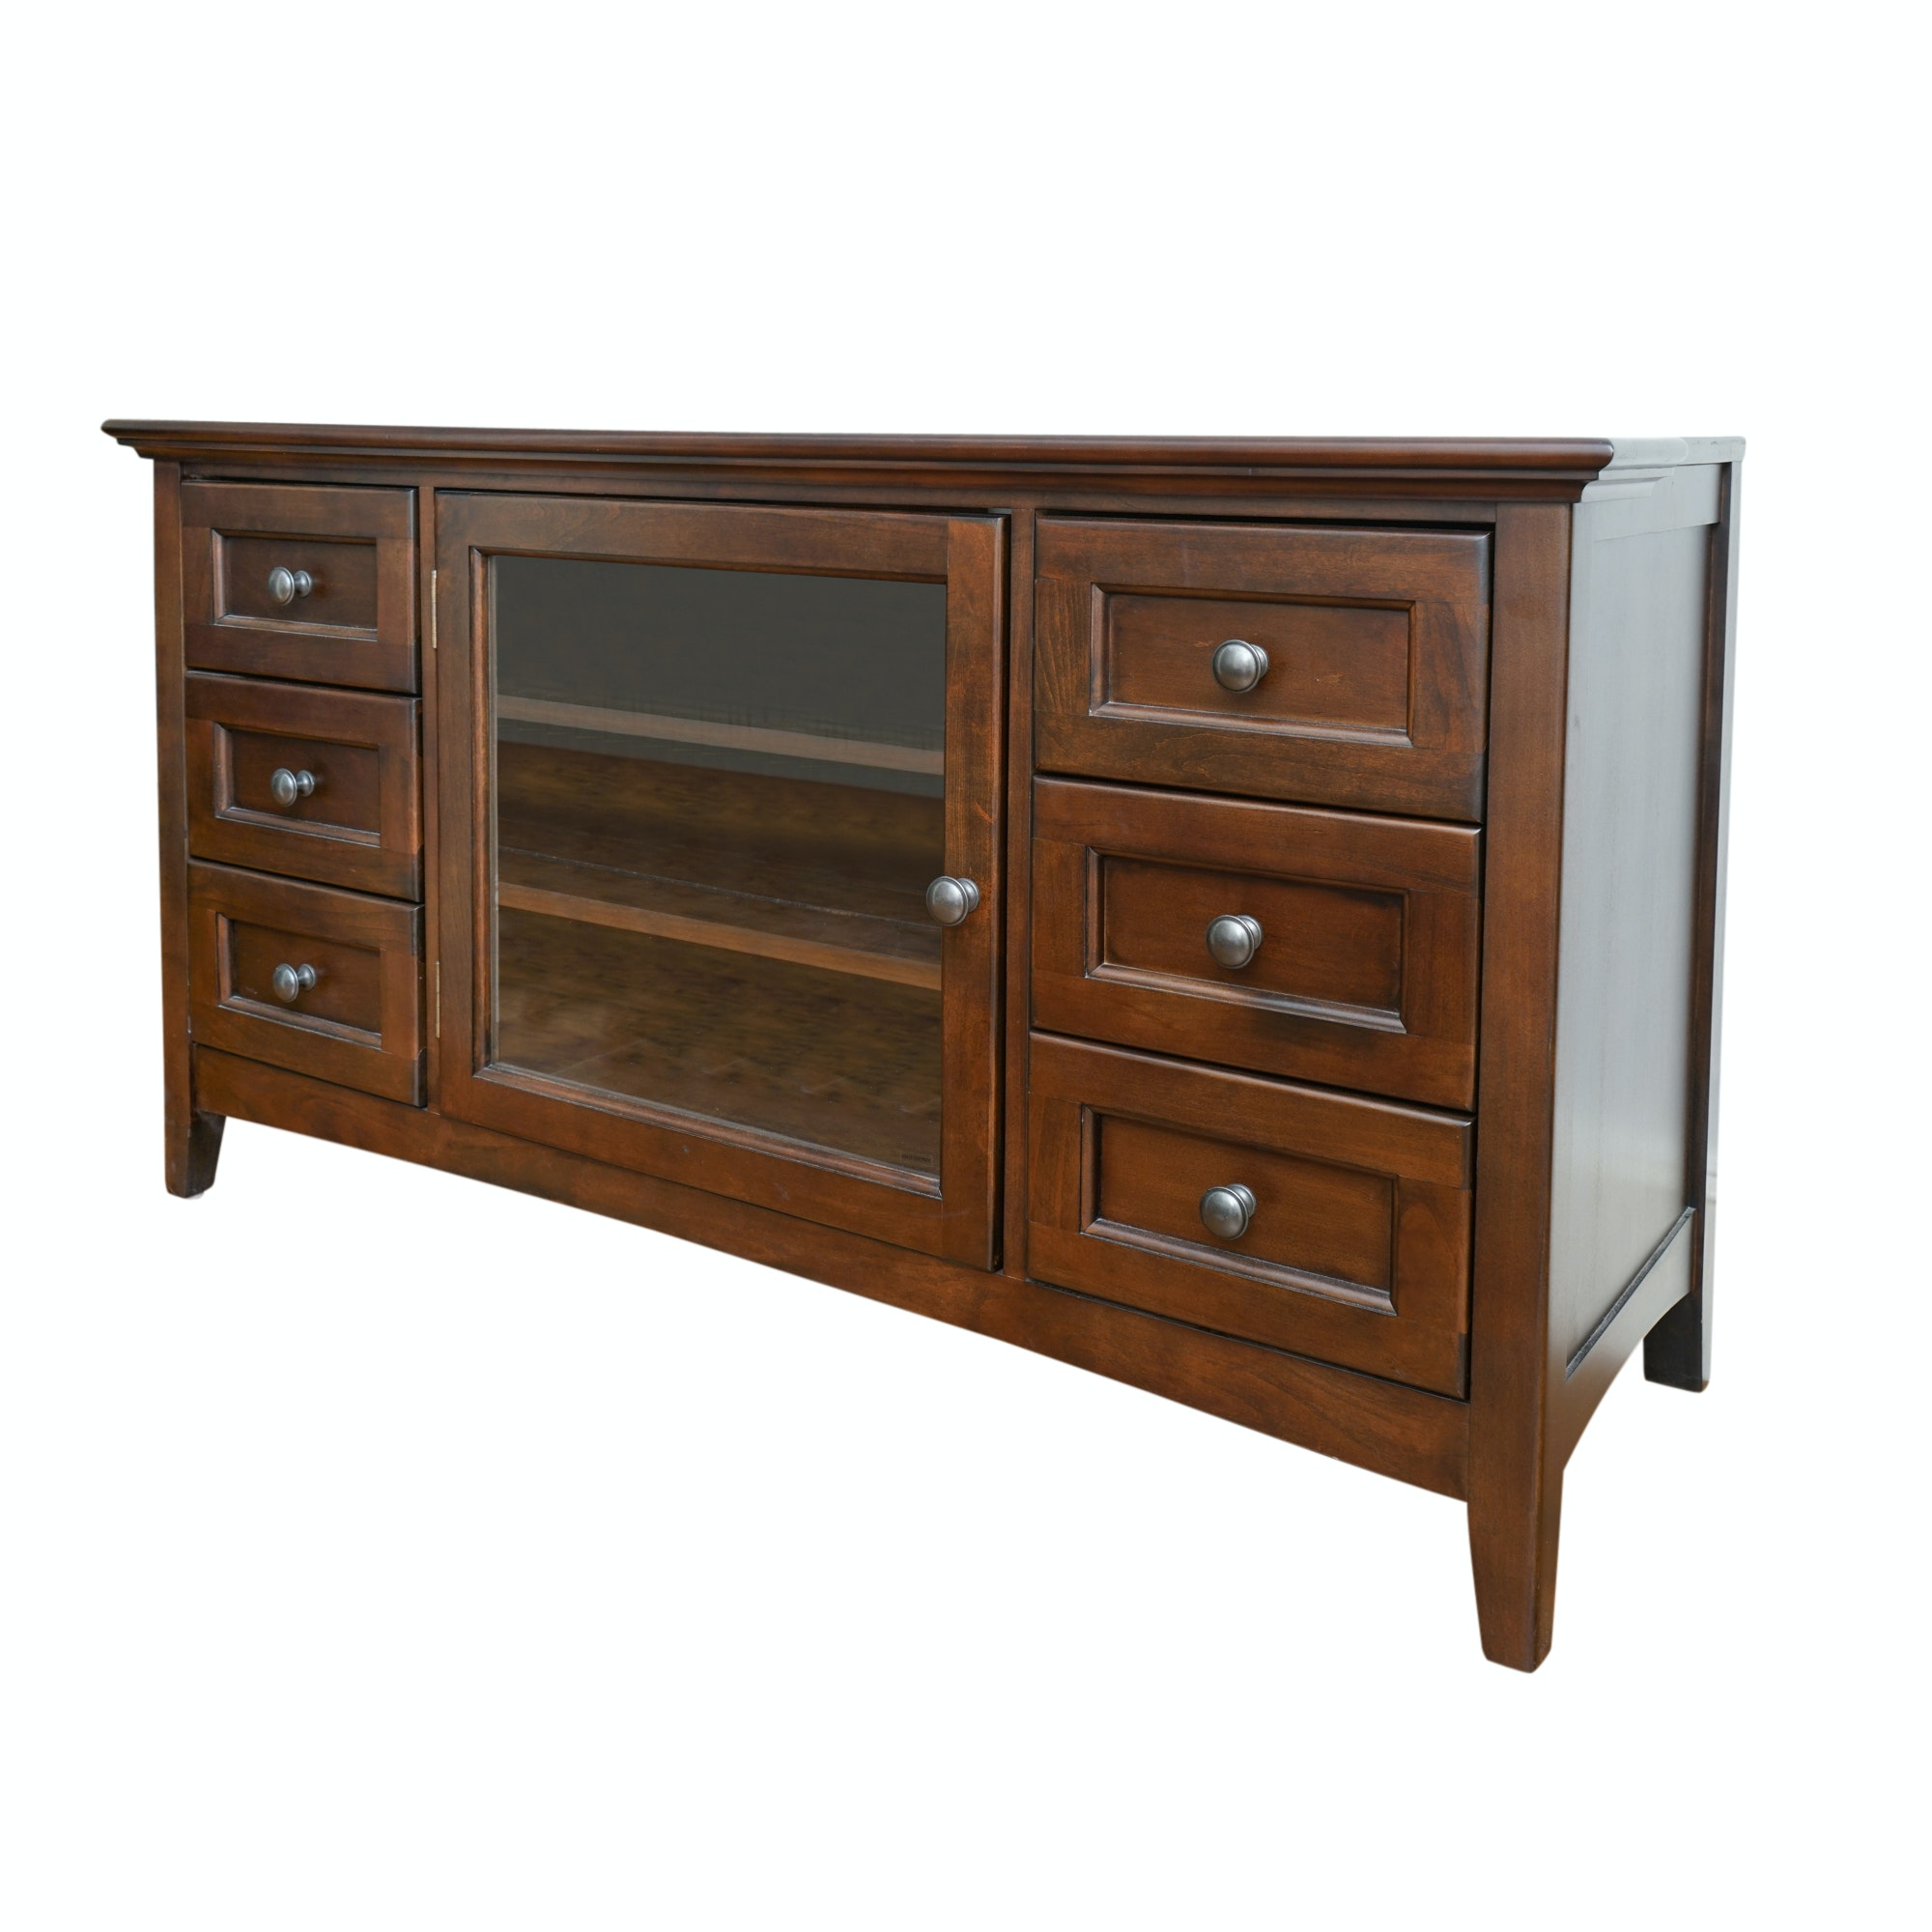 Contemporary Media Console by Whittier Wood Furniture